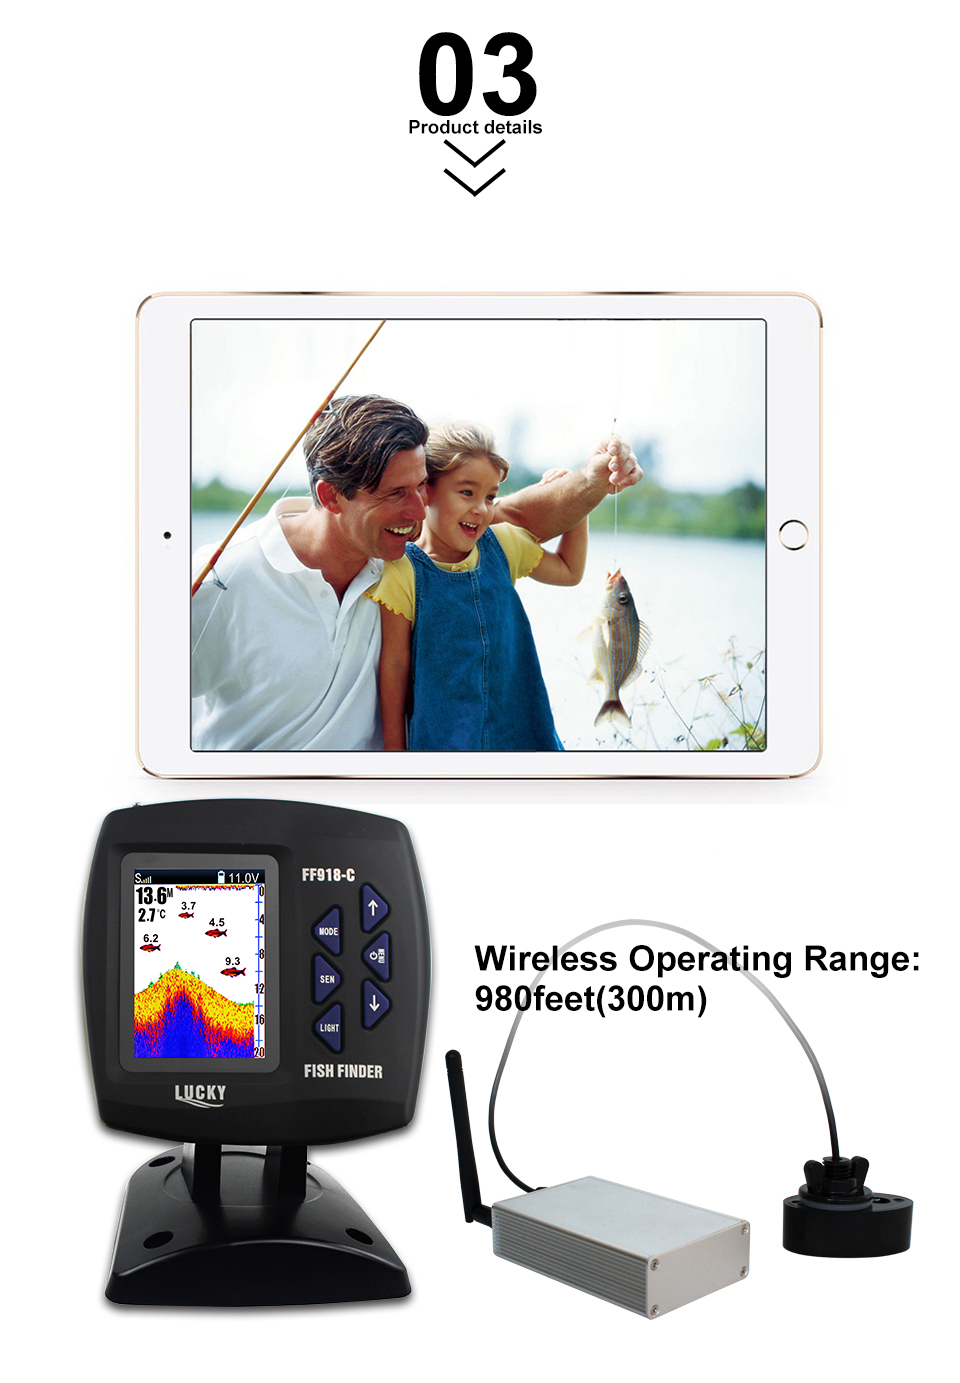 Fish Finder Lucky FF918-CWLS 3.5 LCD Boat Fish Finder wireless Underwater Detector Camera For fishing operating range 300m Depth Range 100M (4)